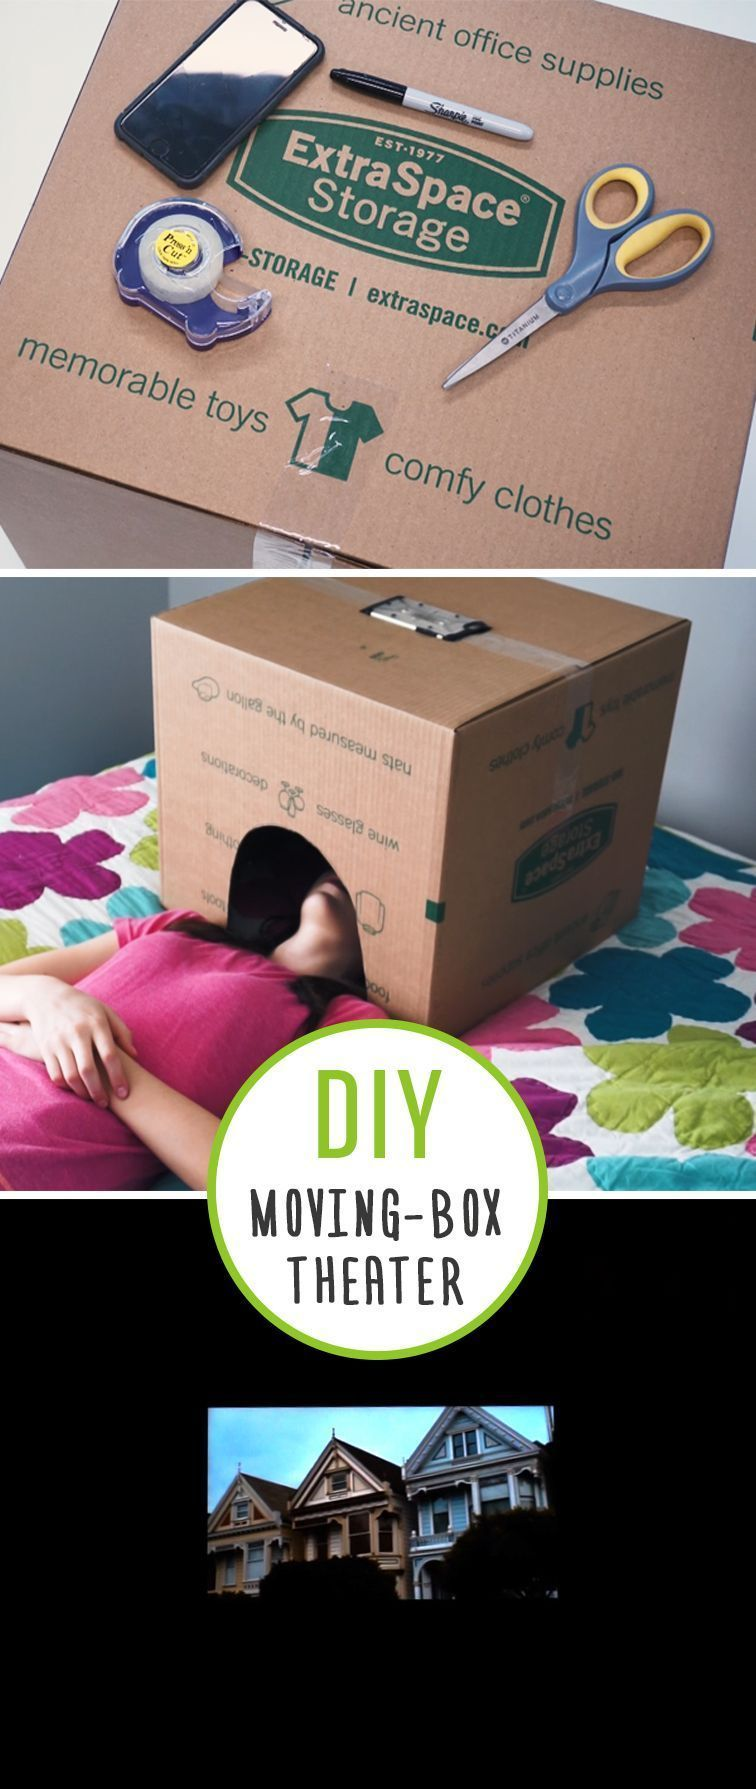 >> Watch instructional video! 5-minute DIY project that you, your kids, or grandkids will love! 5minute crafts diy #5minutecraftsvideos >> Watch instructional video! 5-minute DIY project that you, your kids, or grandkids will love! 5minute crafts diy #5minutecraftsvideos >> Watch instructional video! 5-minute DIY project that you, your kids, or grandkids will love! 5minute crafts diy #5minutecraftsvideos >> Watch instructional video! 5-minute DIY project that you, your kids, or grandkids will lo #5minutecraftsvideos